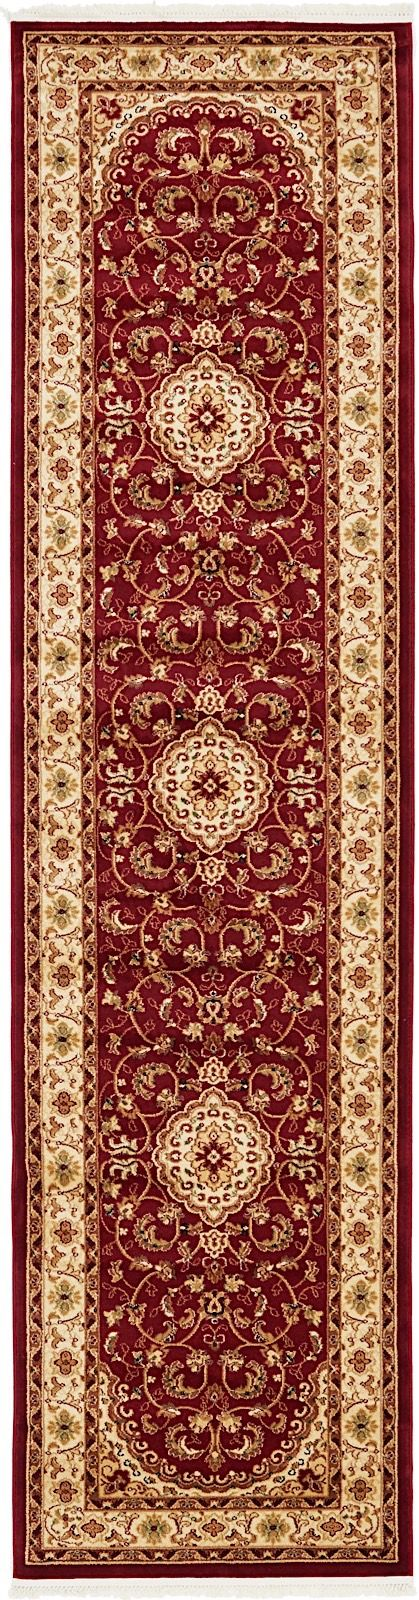 unique loom seville traditional area rug collection